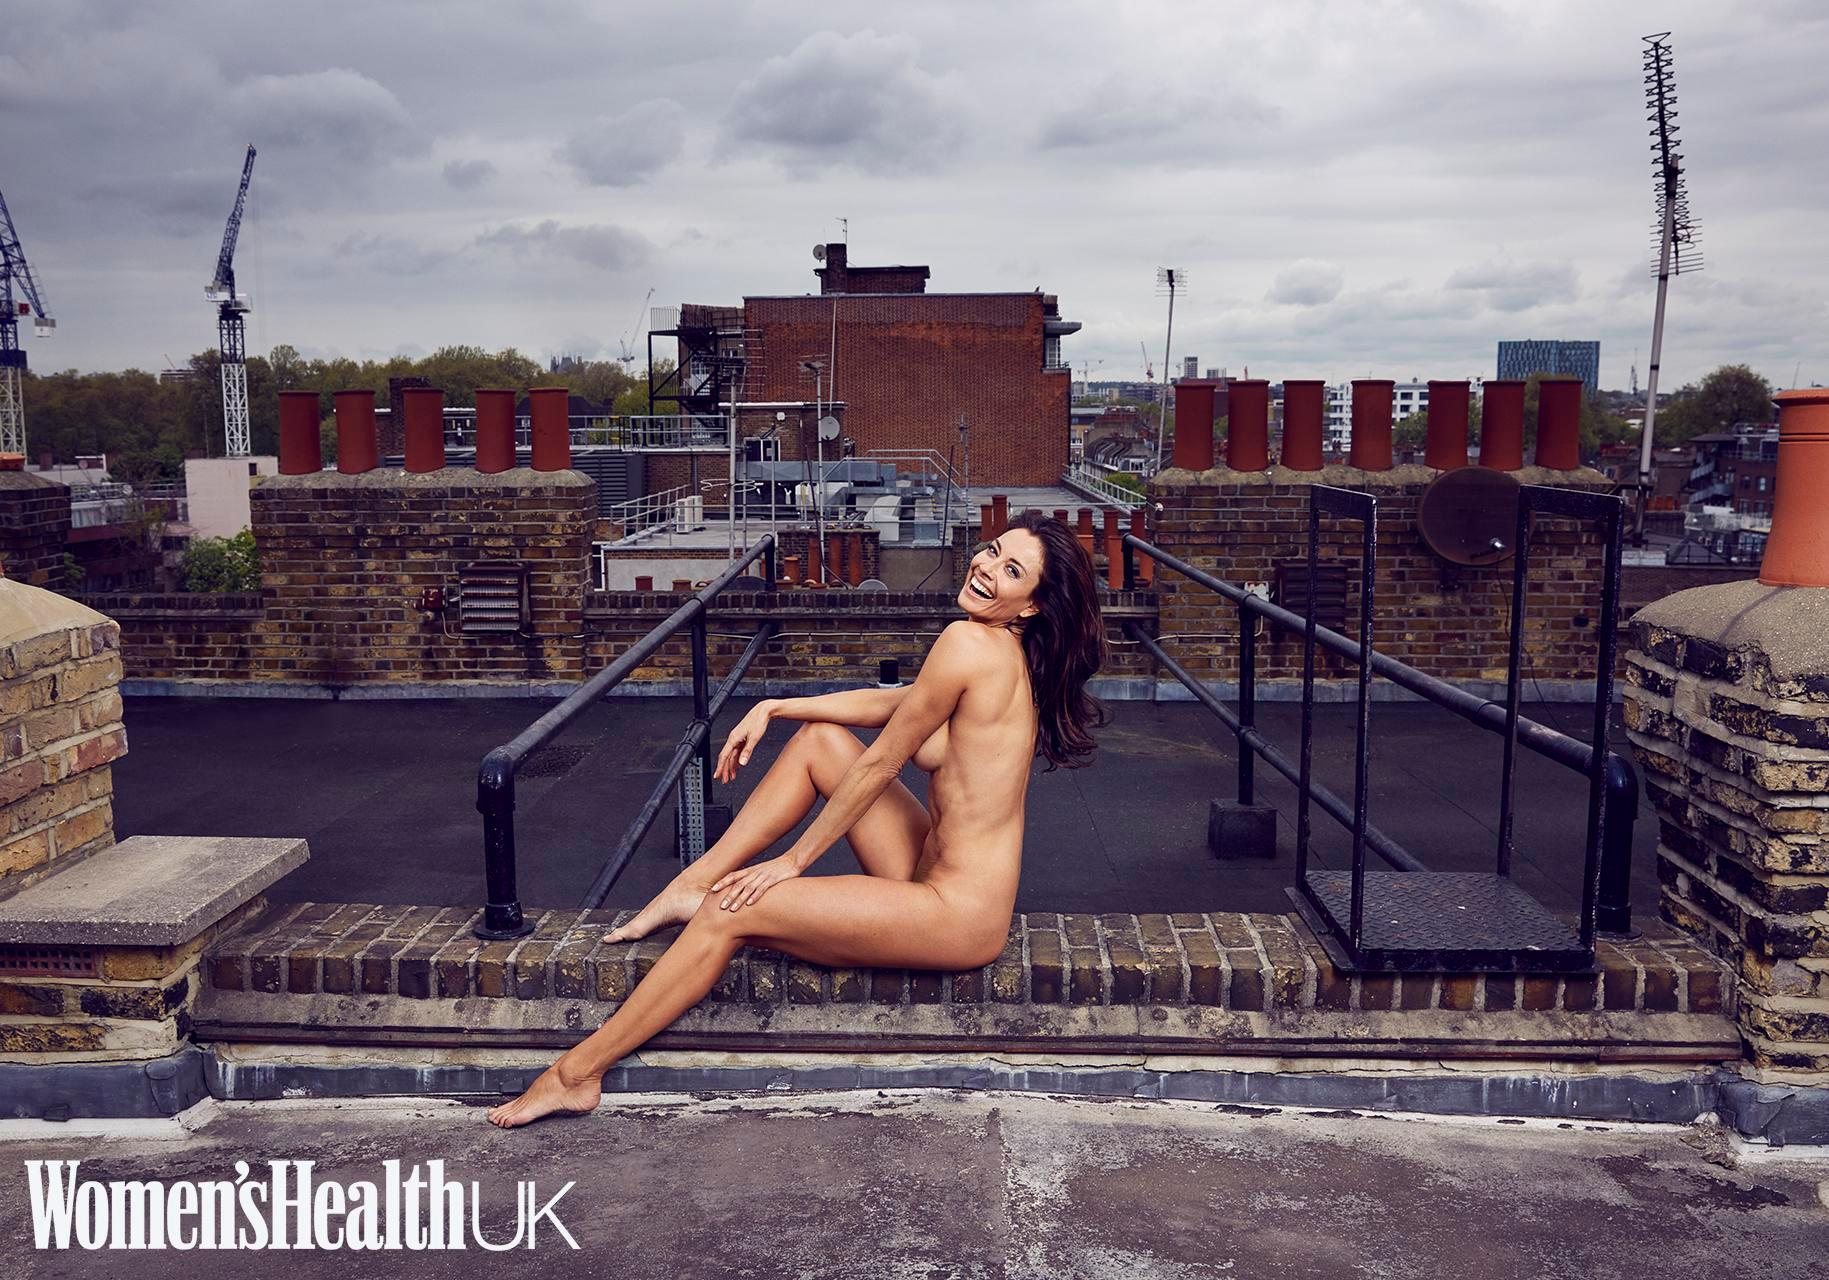 Hd Pics Of She Is Middle Aged She Is Gorgeous And She Is Stark Naked melanie sykes strips completely naked as she turns 47 in stunning